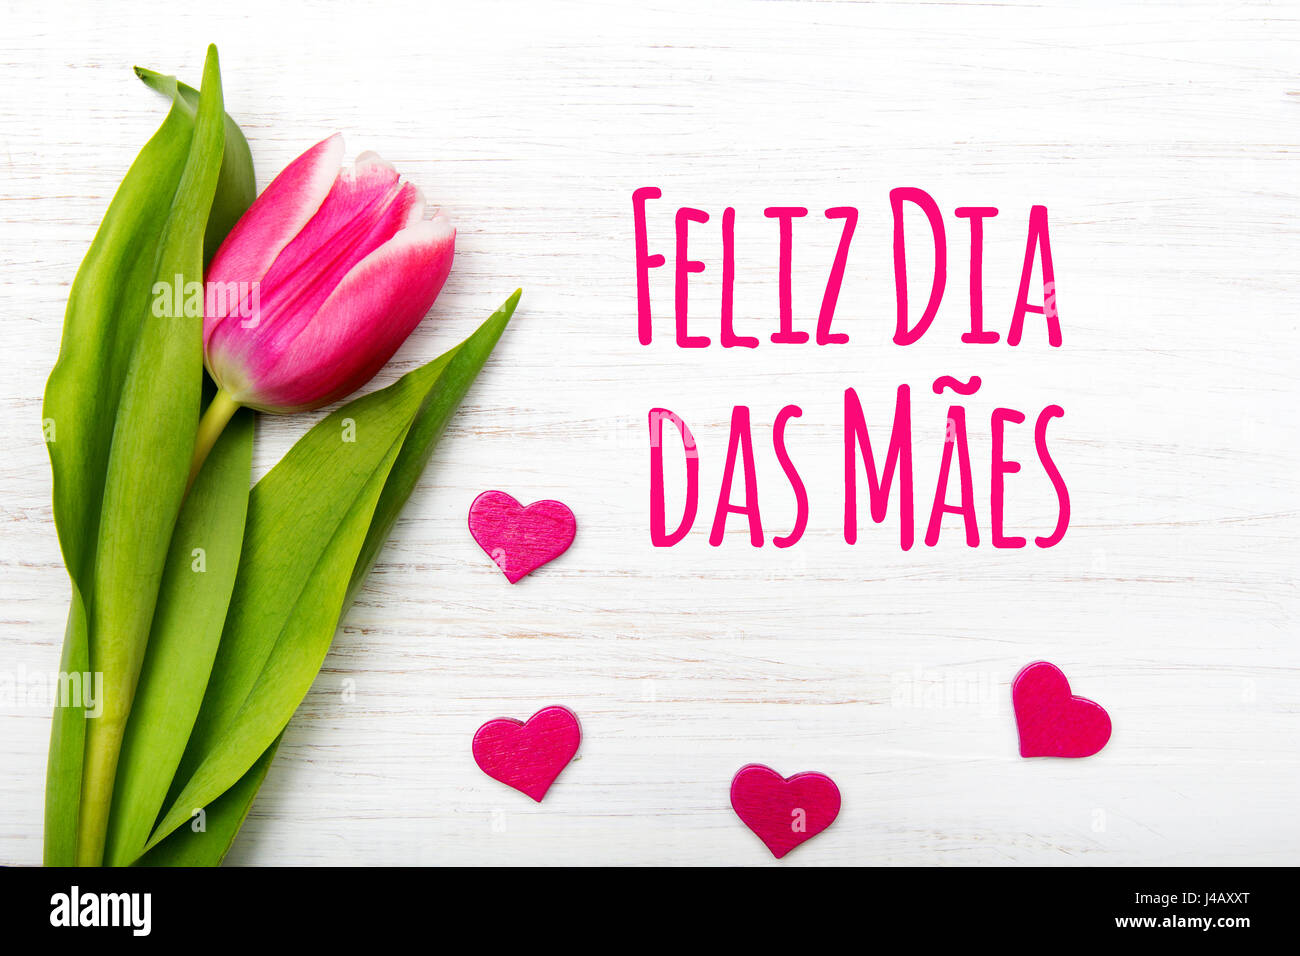 Mothers day card with portuguese words happy mothers day and mothers day card with portuguese words happy mothers day and pink tulip on white wooden background kristyandbryce Choice Image